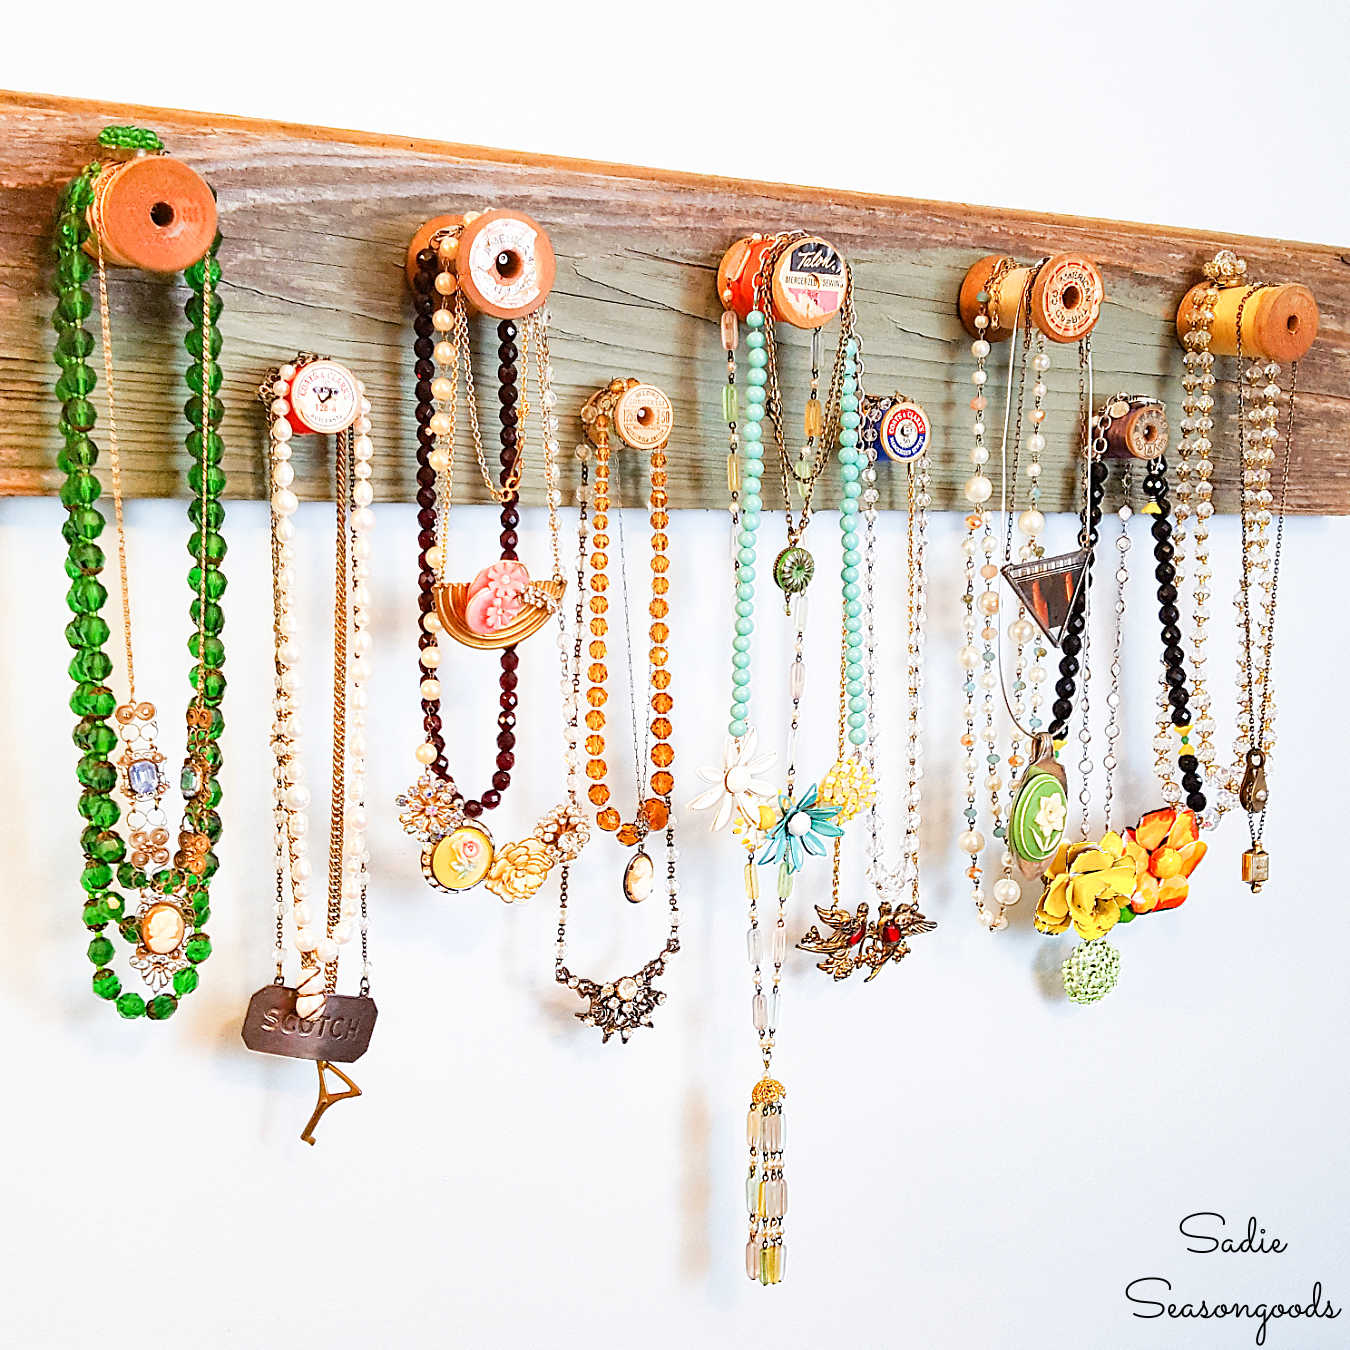 Wooden Necklace Holder with Vintage Thread Spools